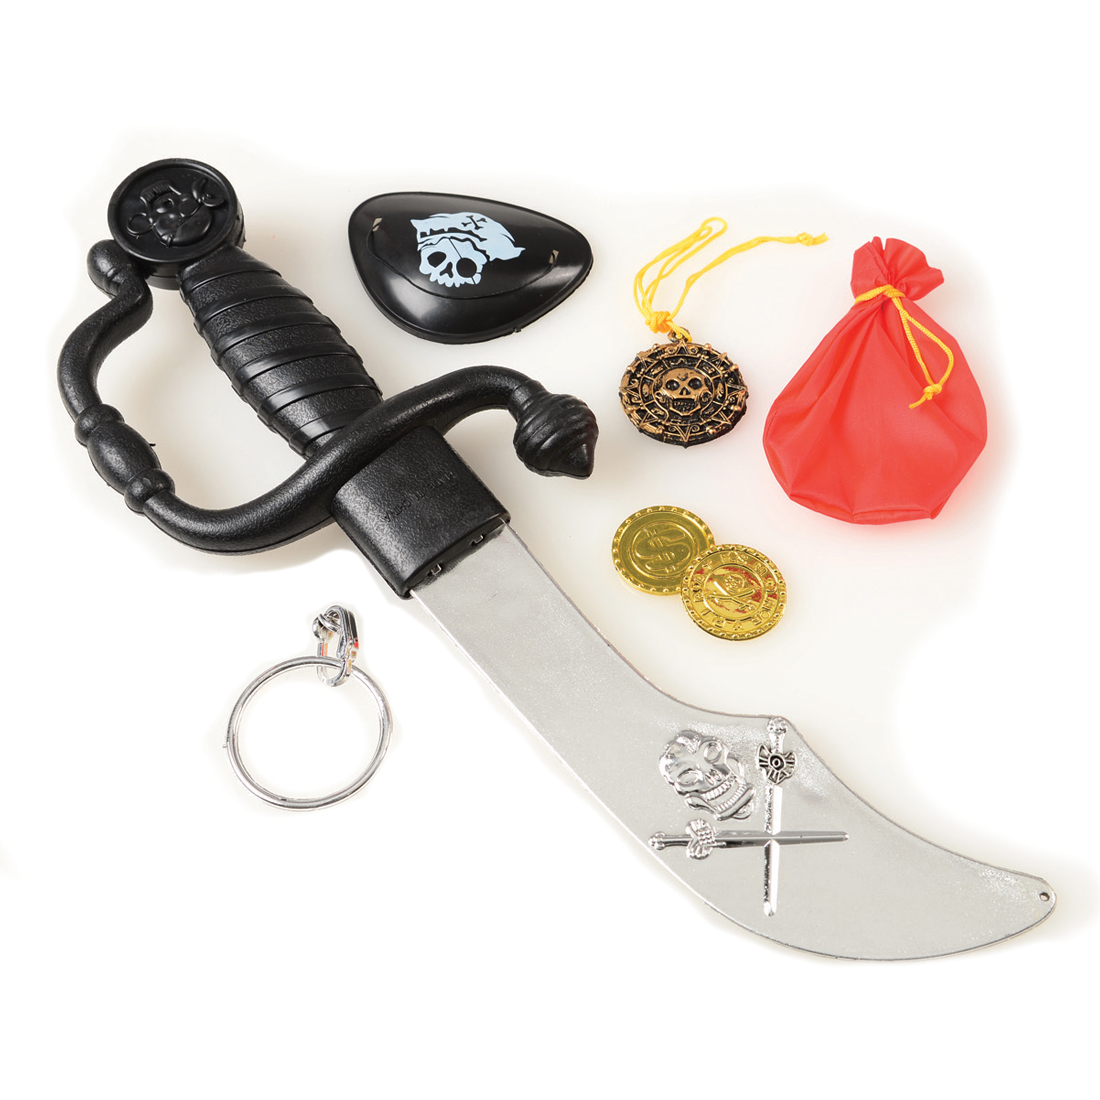 US Toy Pirate Sword Coin Eyepatch Child's 7pc Costume Accessory Kit, One-Size